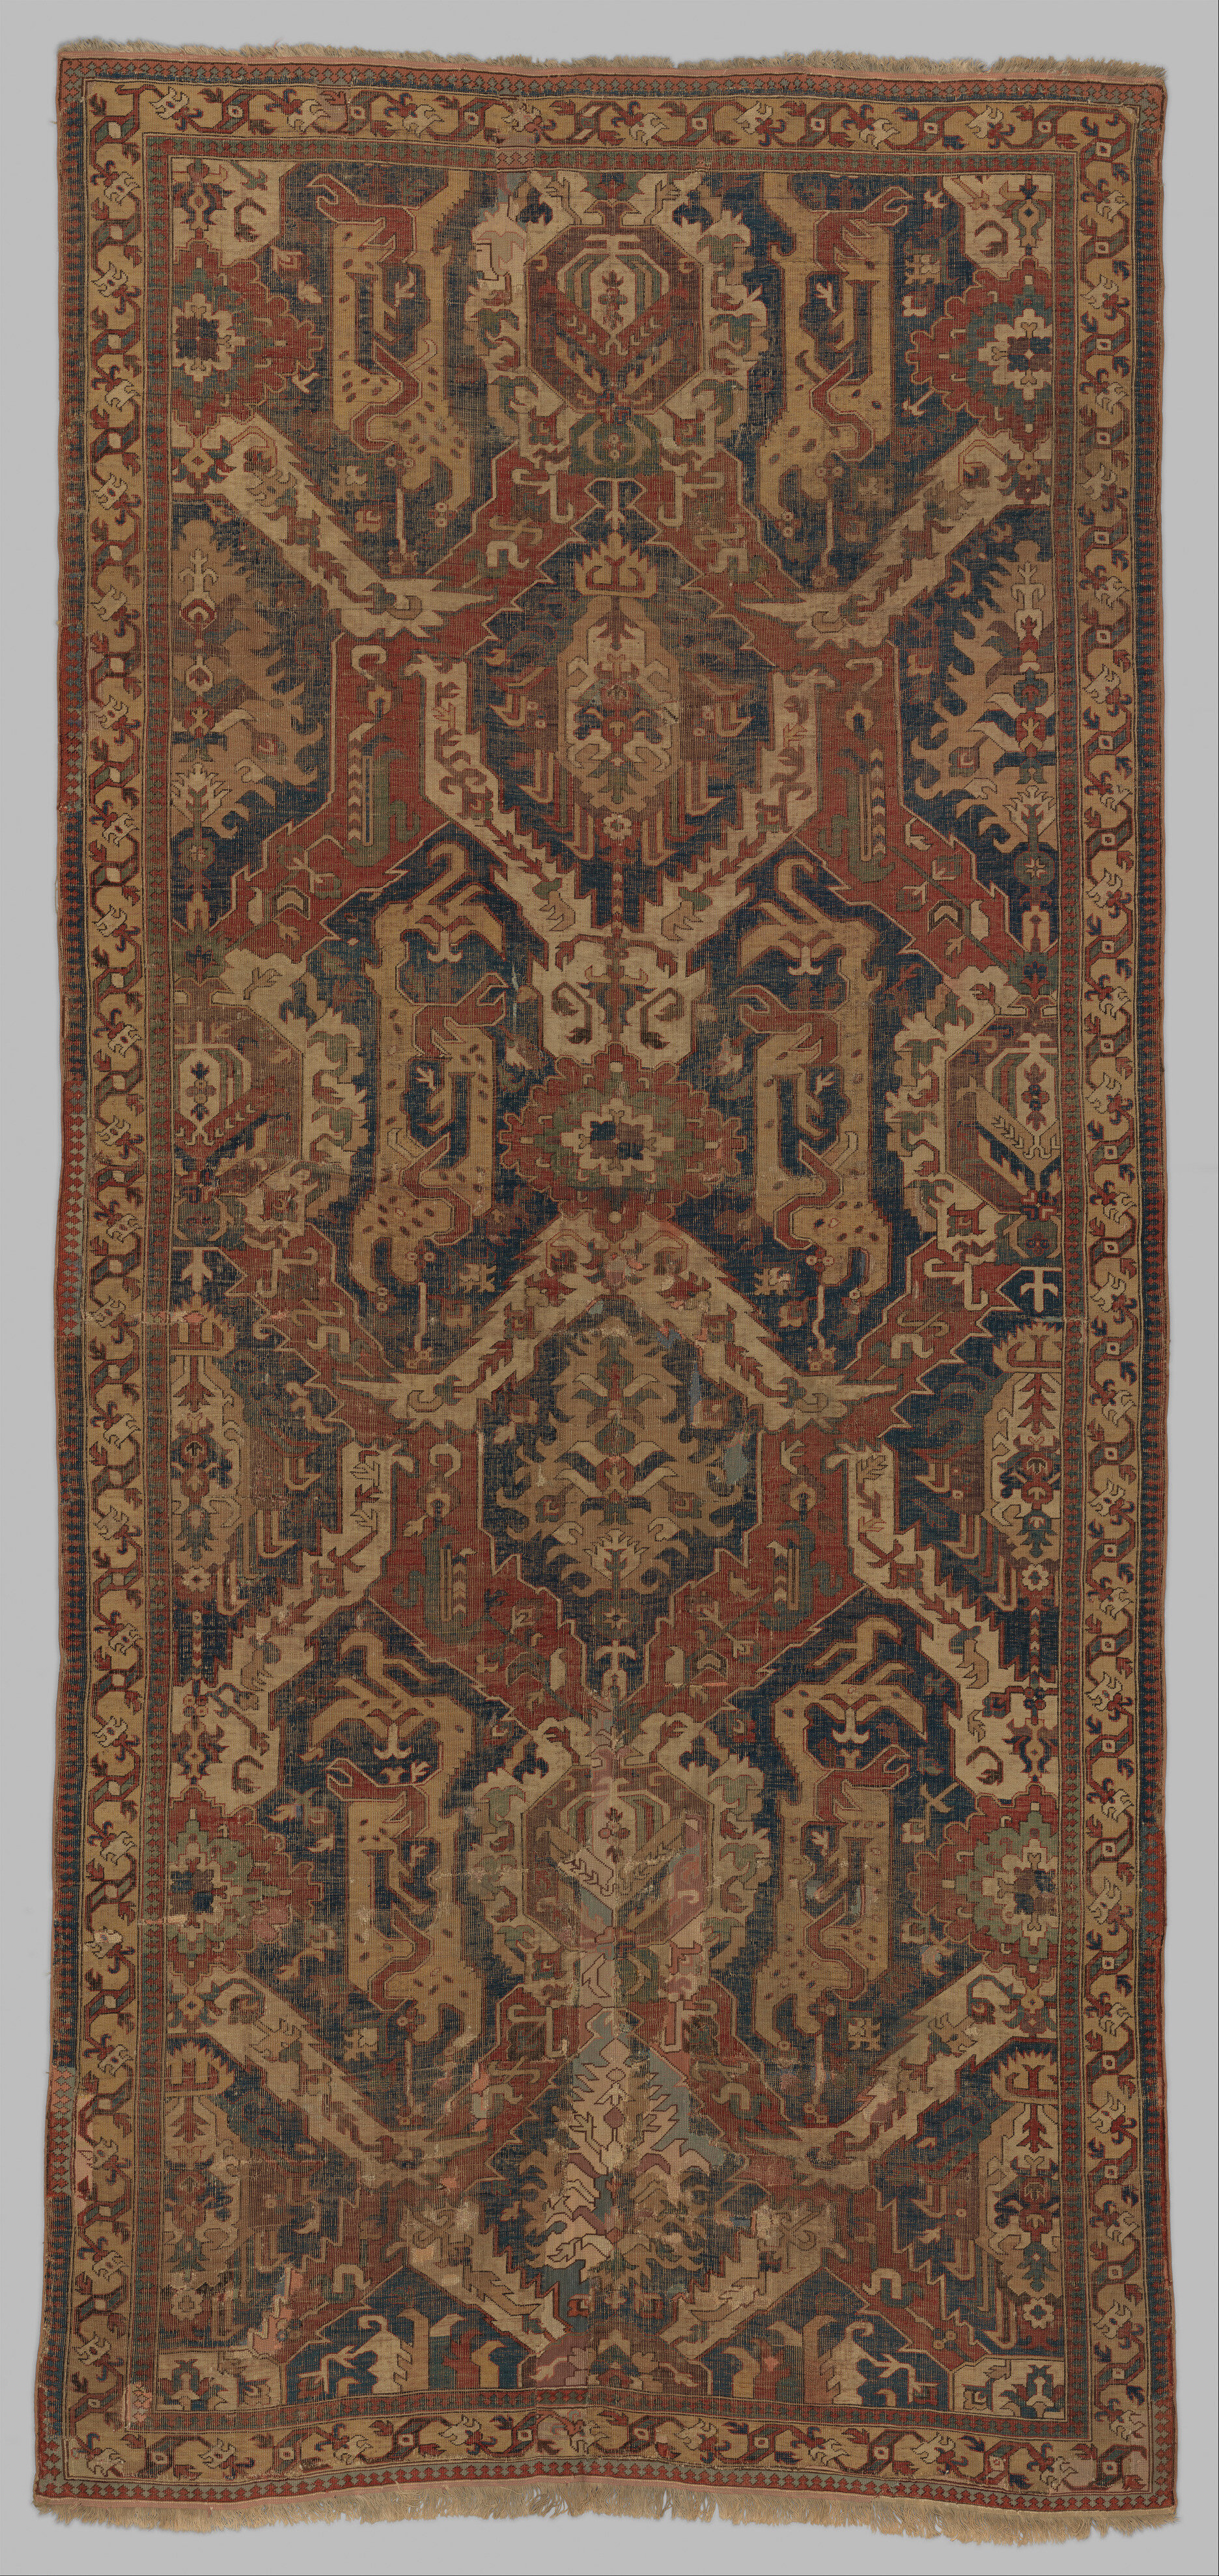 Dragon Carpet, Met.jpg